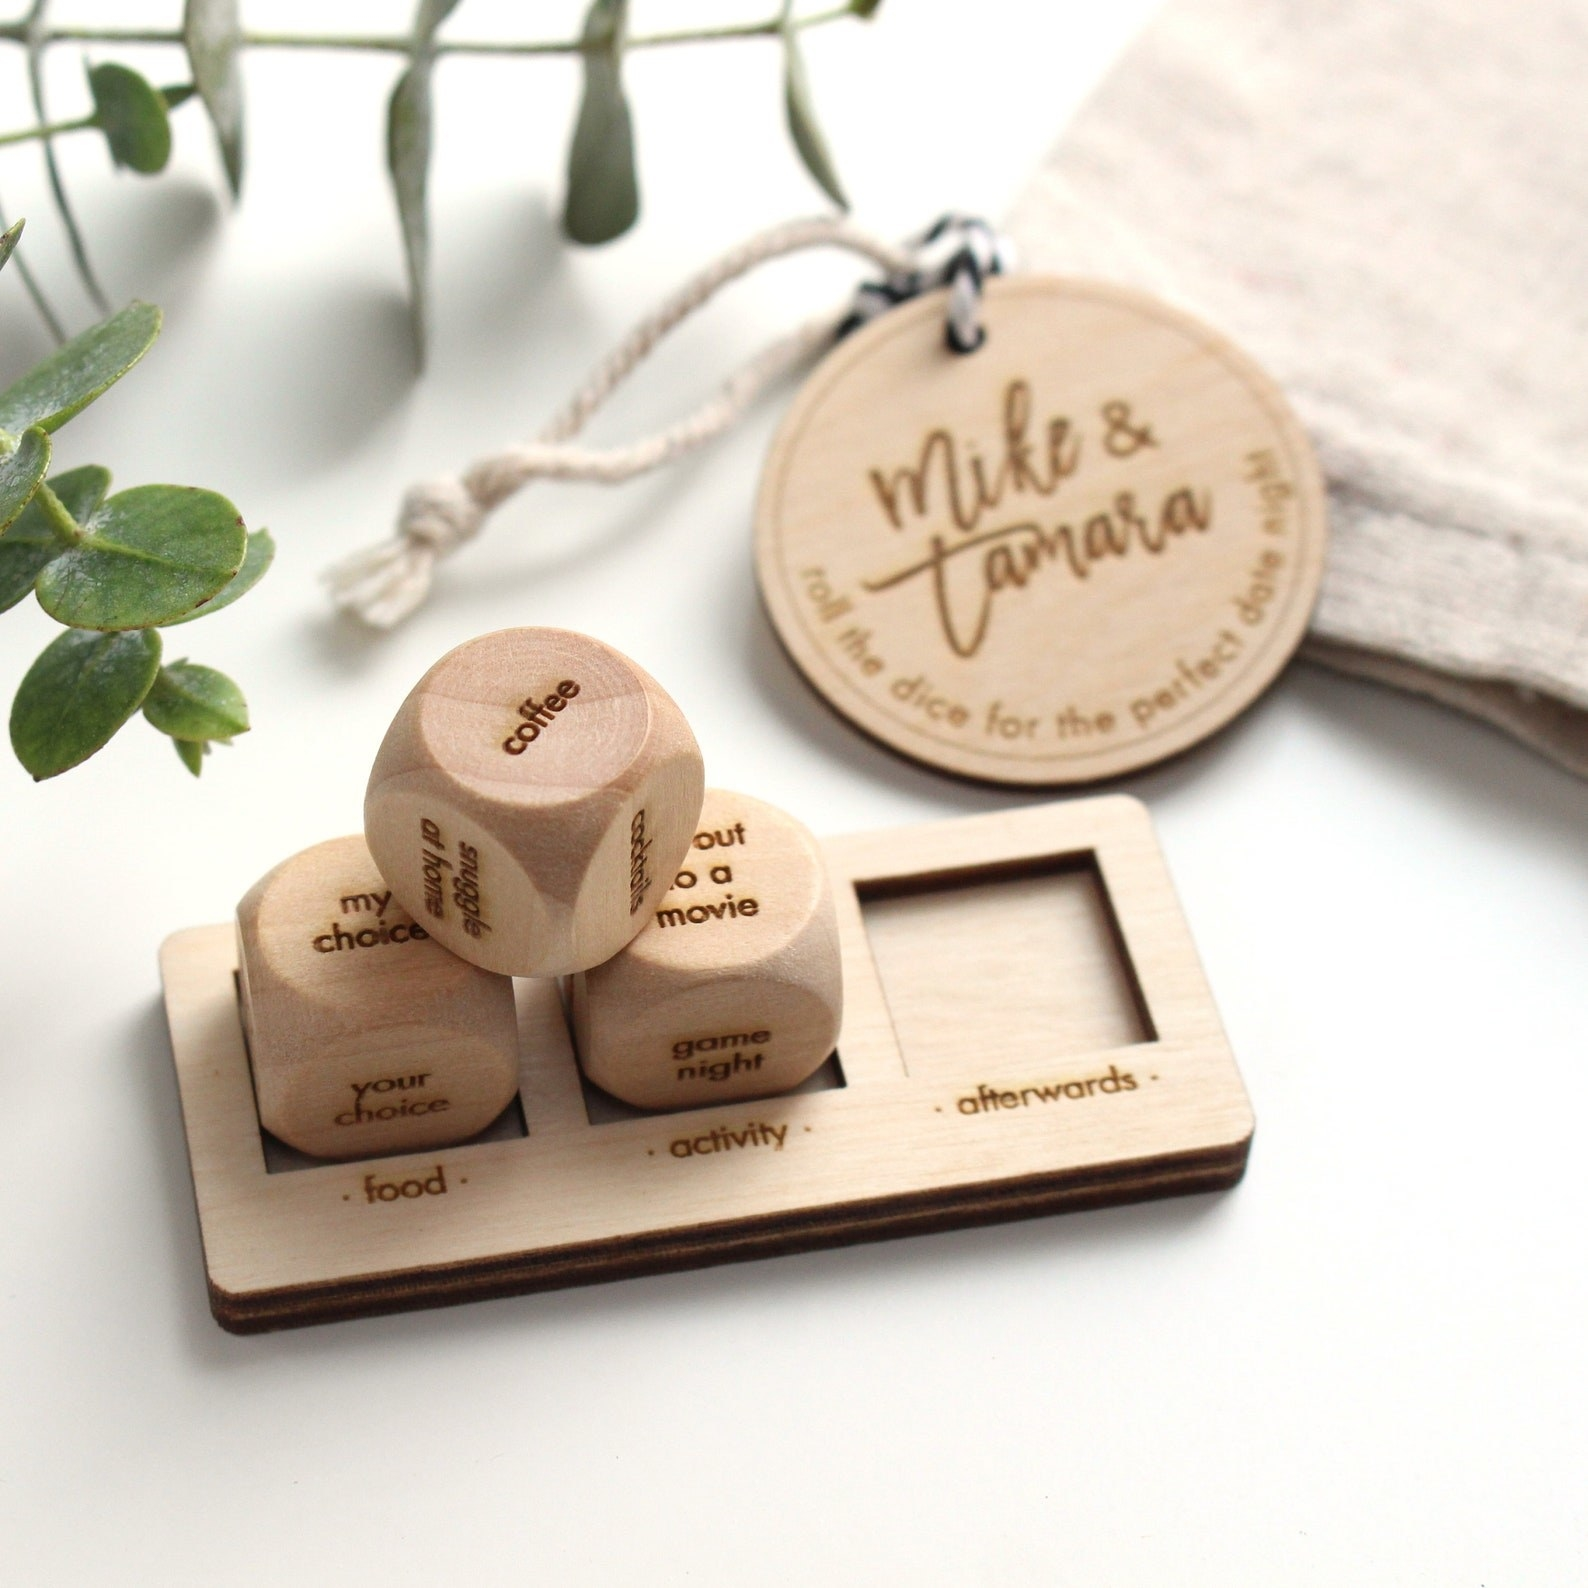 Three wooden dice engraved with activities resting on a mount with three spaces for food, activity, and afterwards